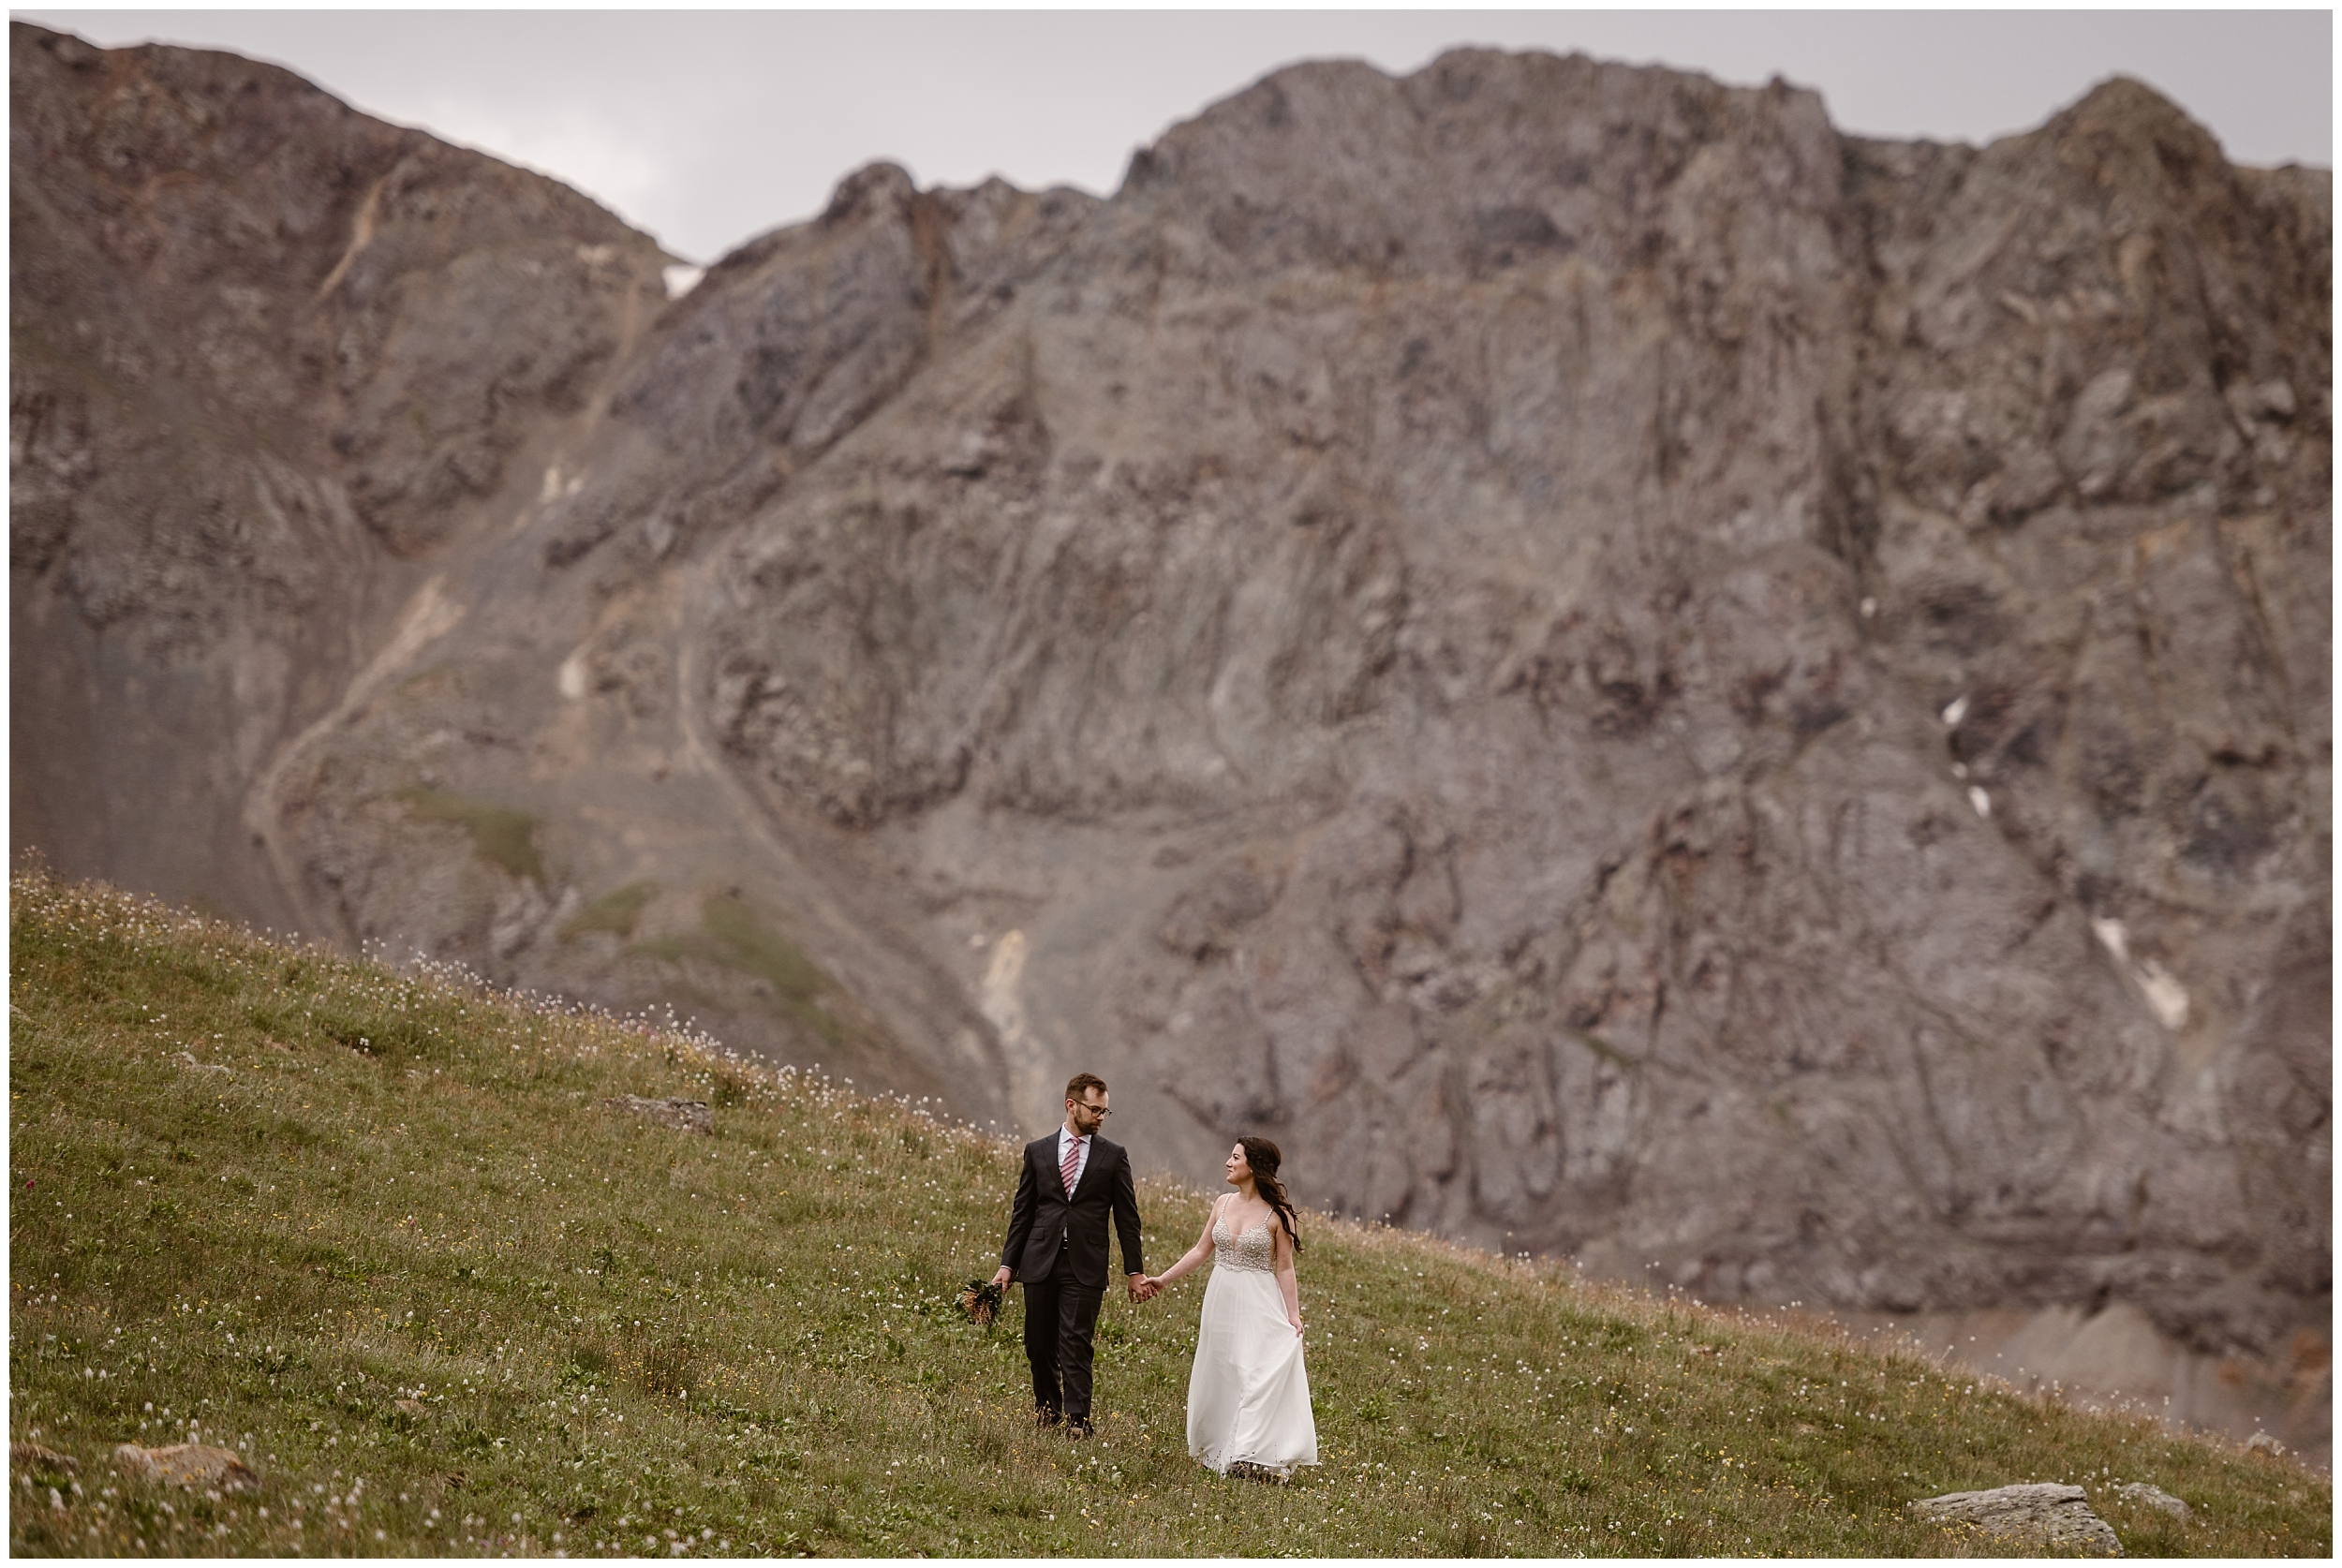 Katie and Logan stand in a green meadow dotted with wildflowers holding hands. Behind them, an enormous granite part of the mountain looms. The two look at each other as they hike to their Colorado mountain wedding location.